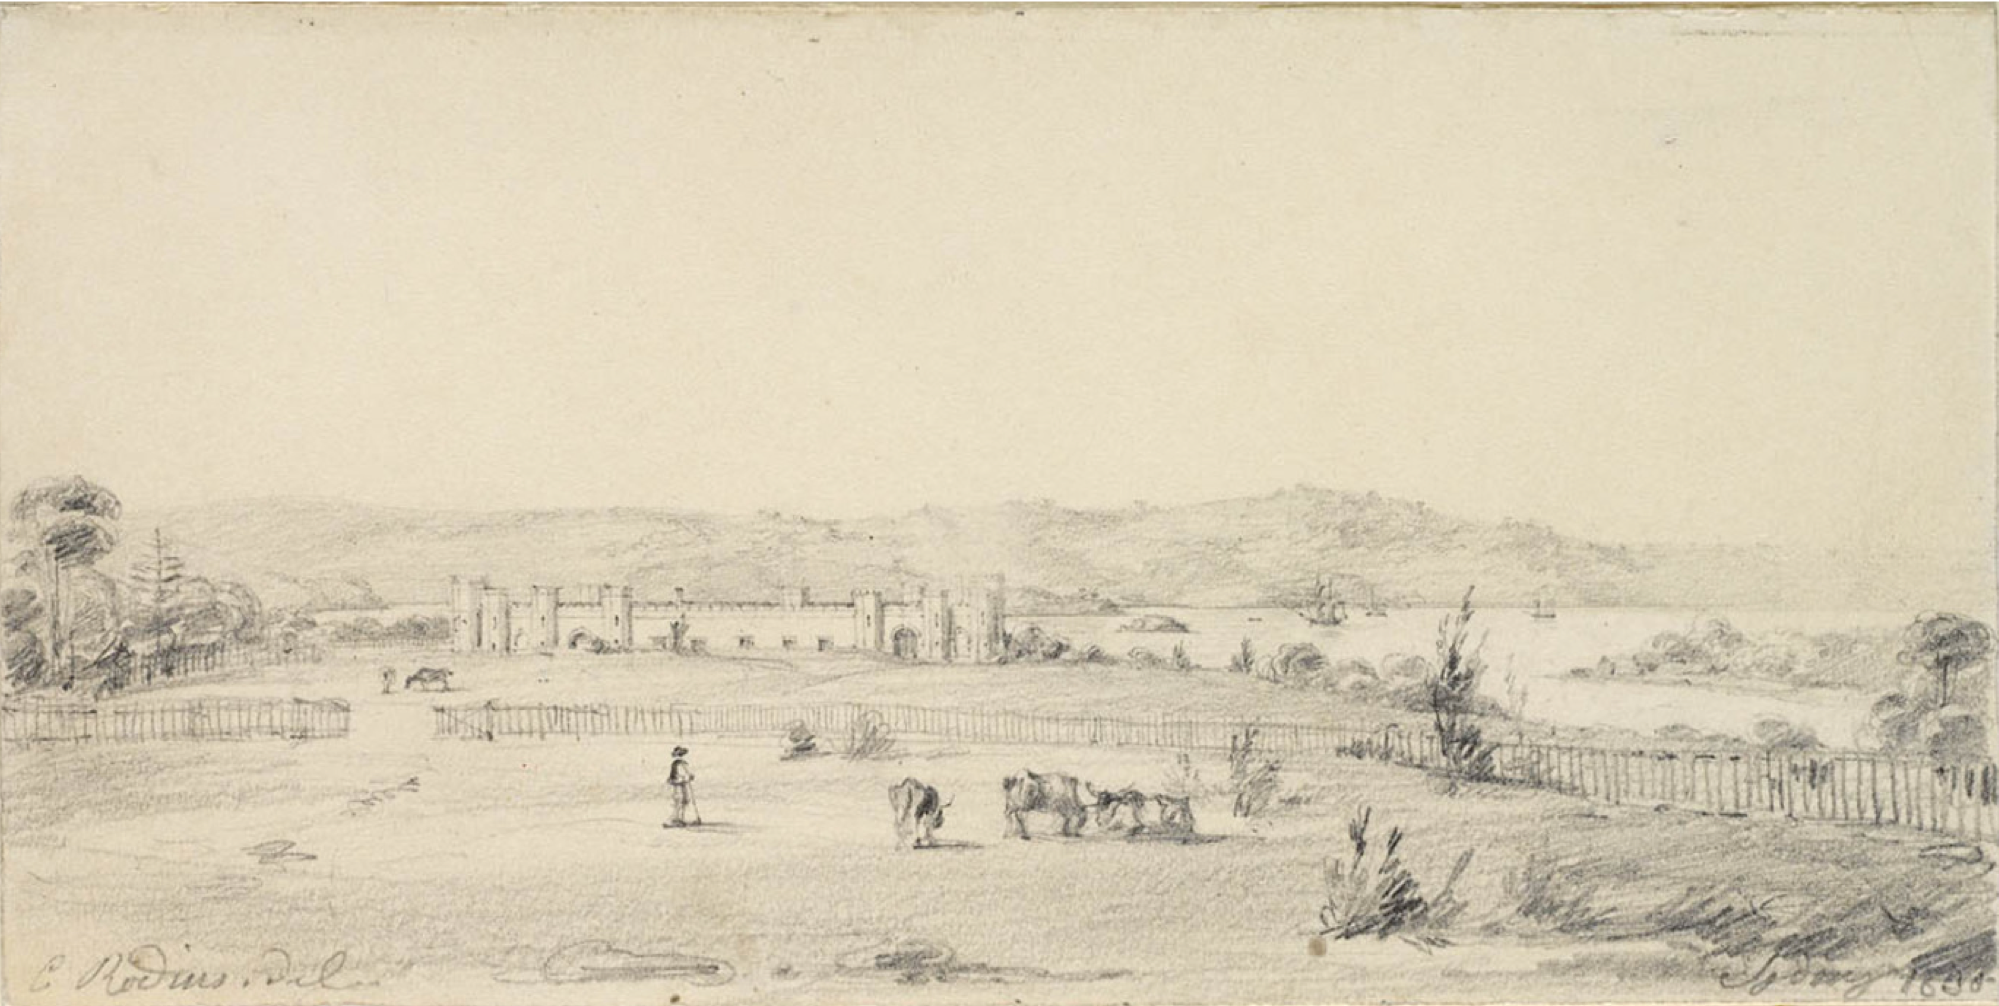 Government House, Sydney, 1830, Charles Rodius, St. John's Cemetery Project, Old Parramattans.